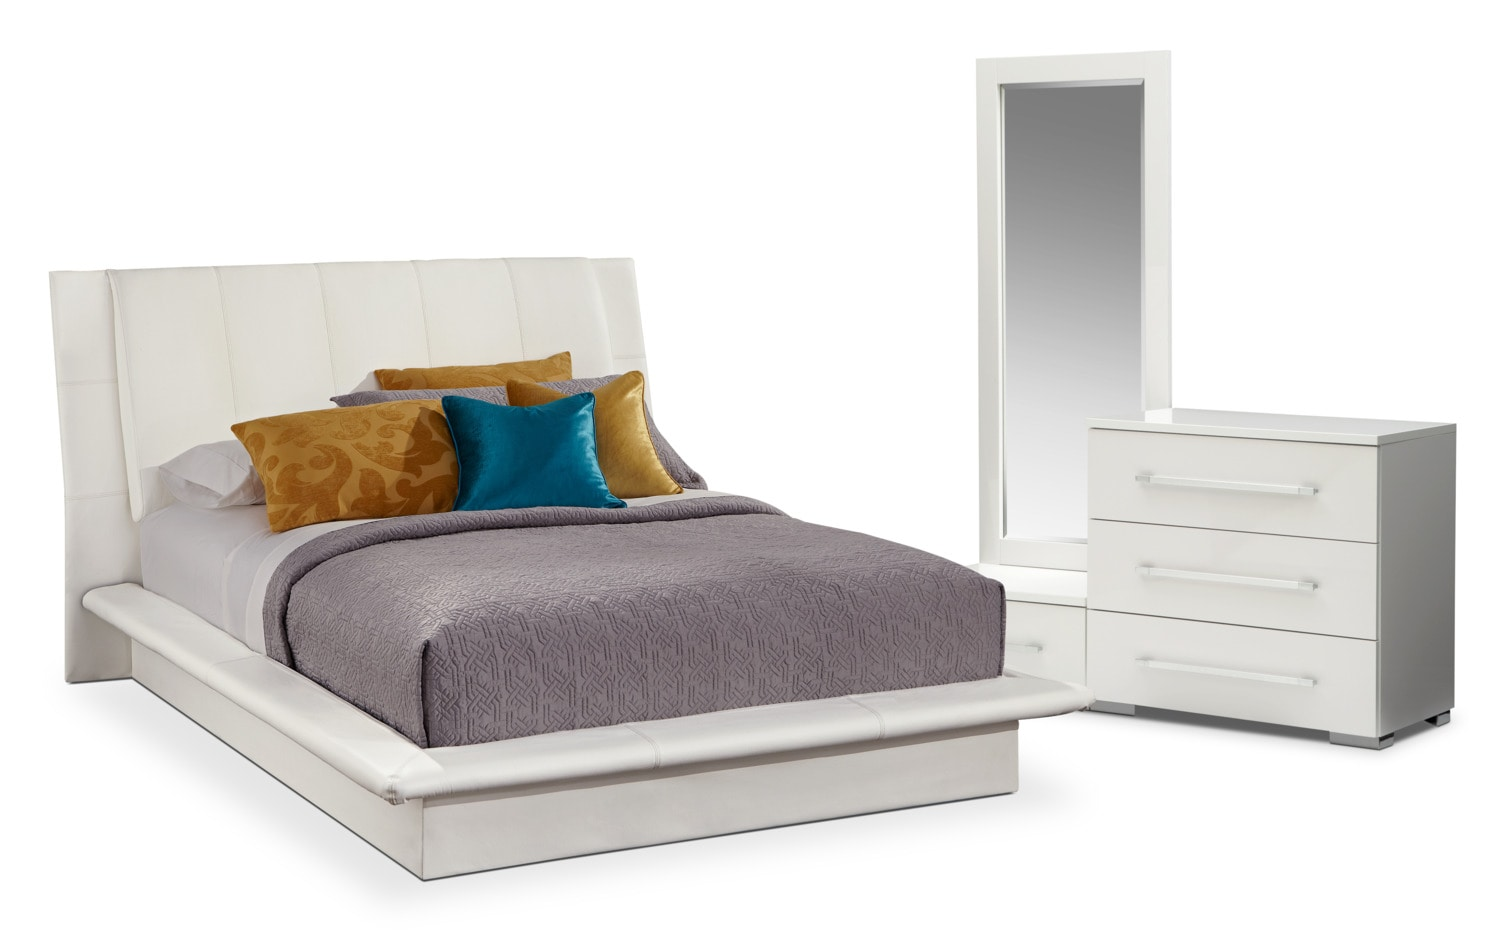 Delightful Was $699.98 Today $559.98 Dimora 5 Piece Queen Upholstered Bedroom Set    White By Factory Outlet